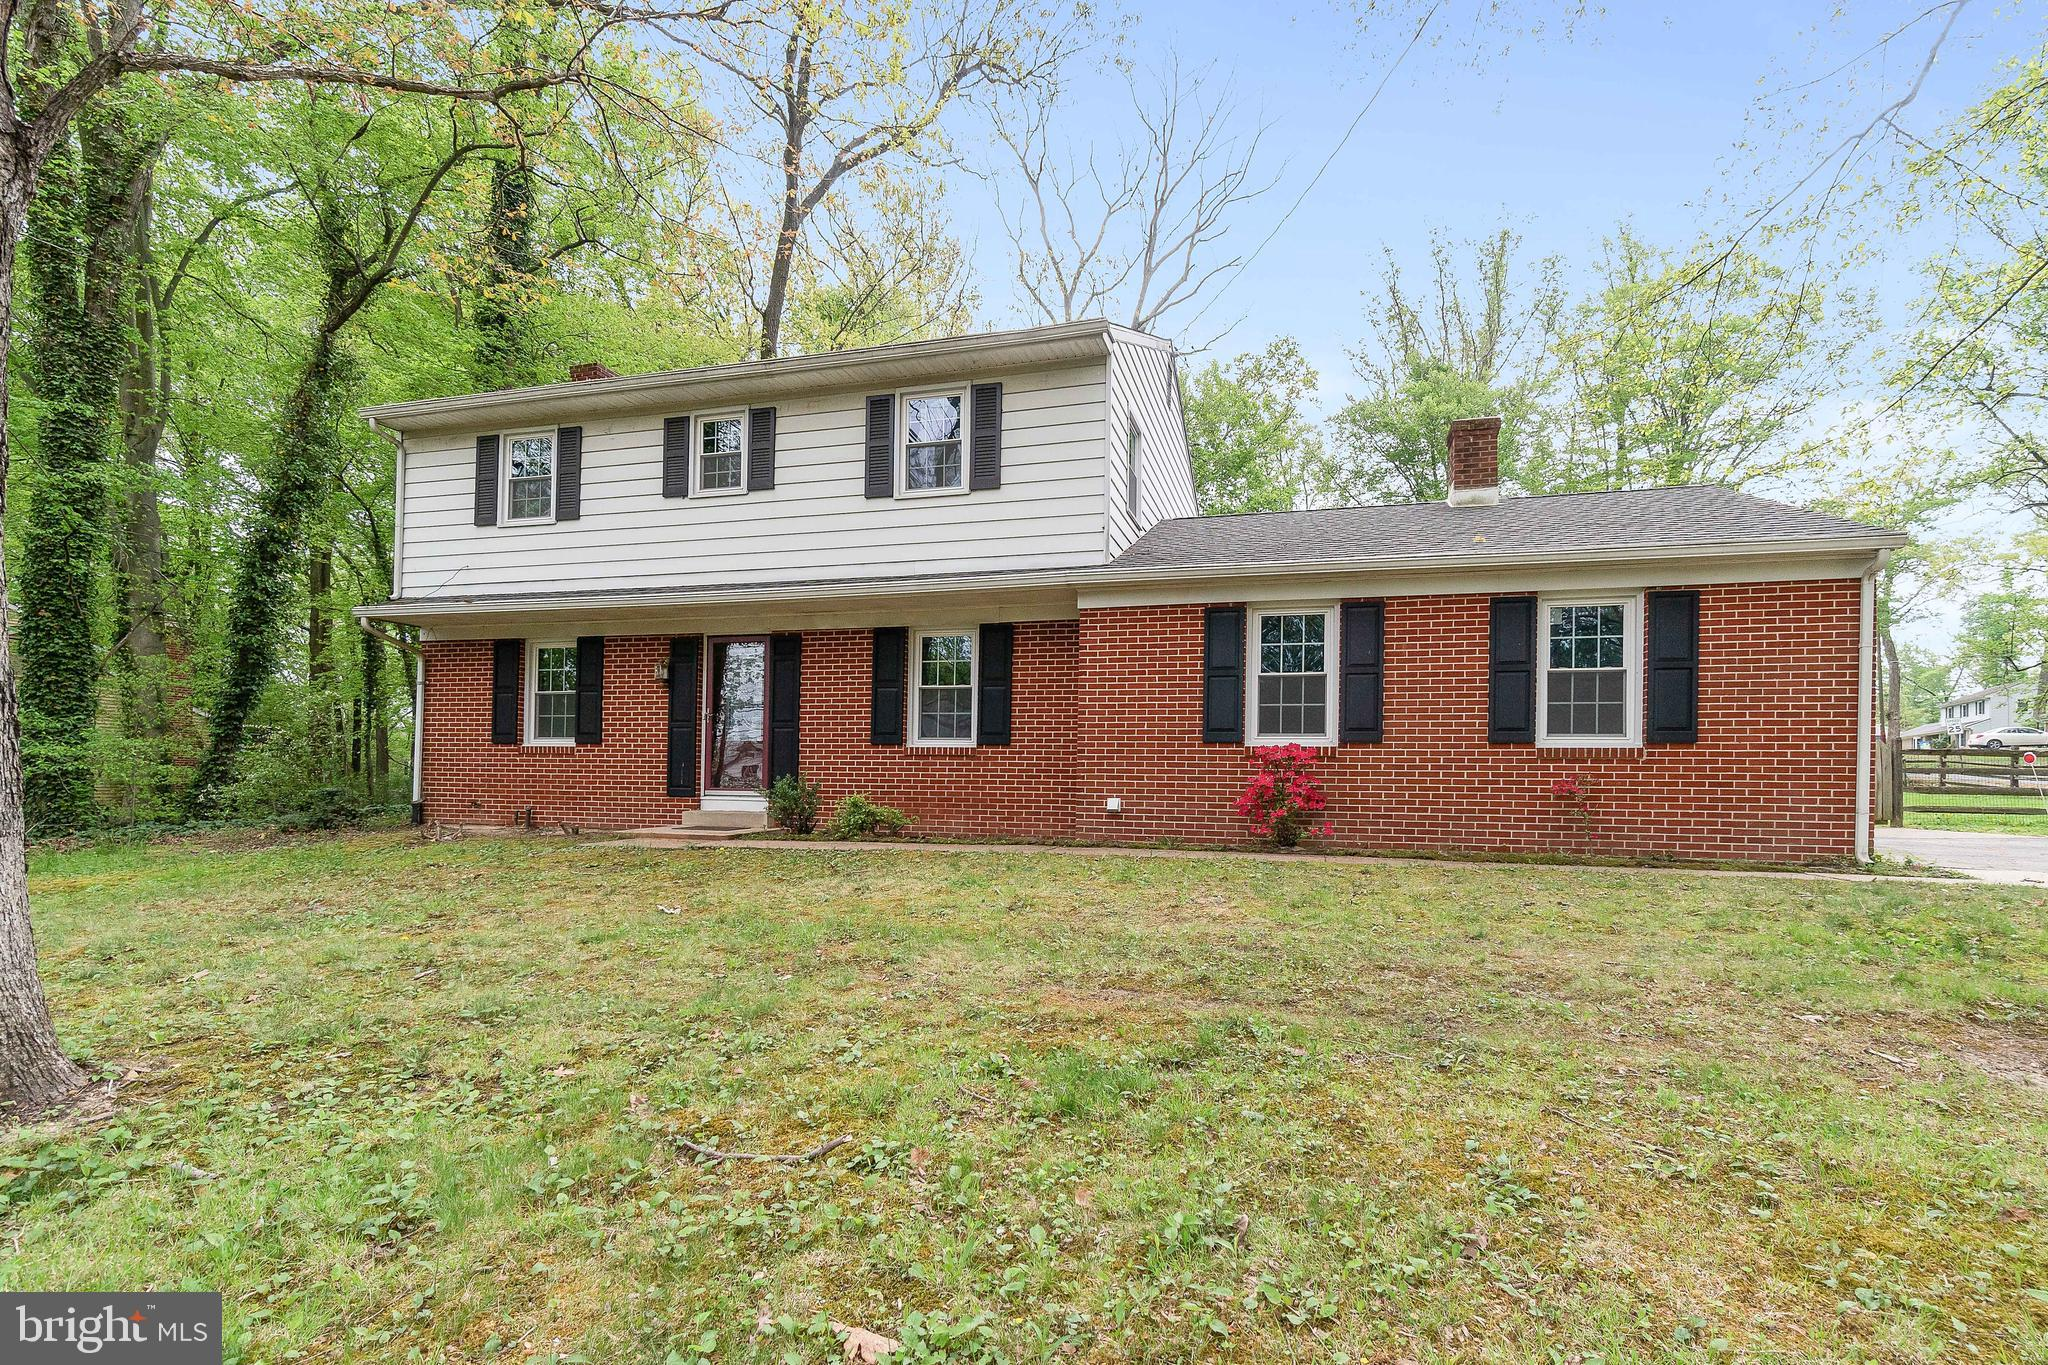 Over 2000 square feet! This spacious home has two fireplaces, hard floors throughout the home, a gre